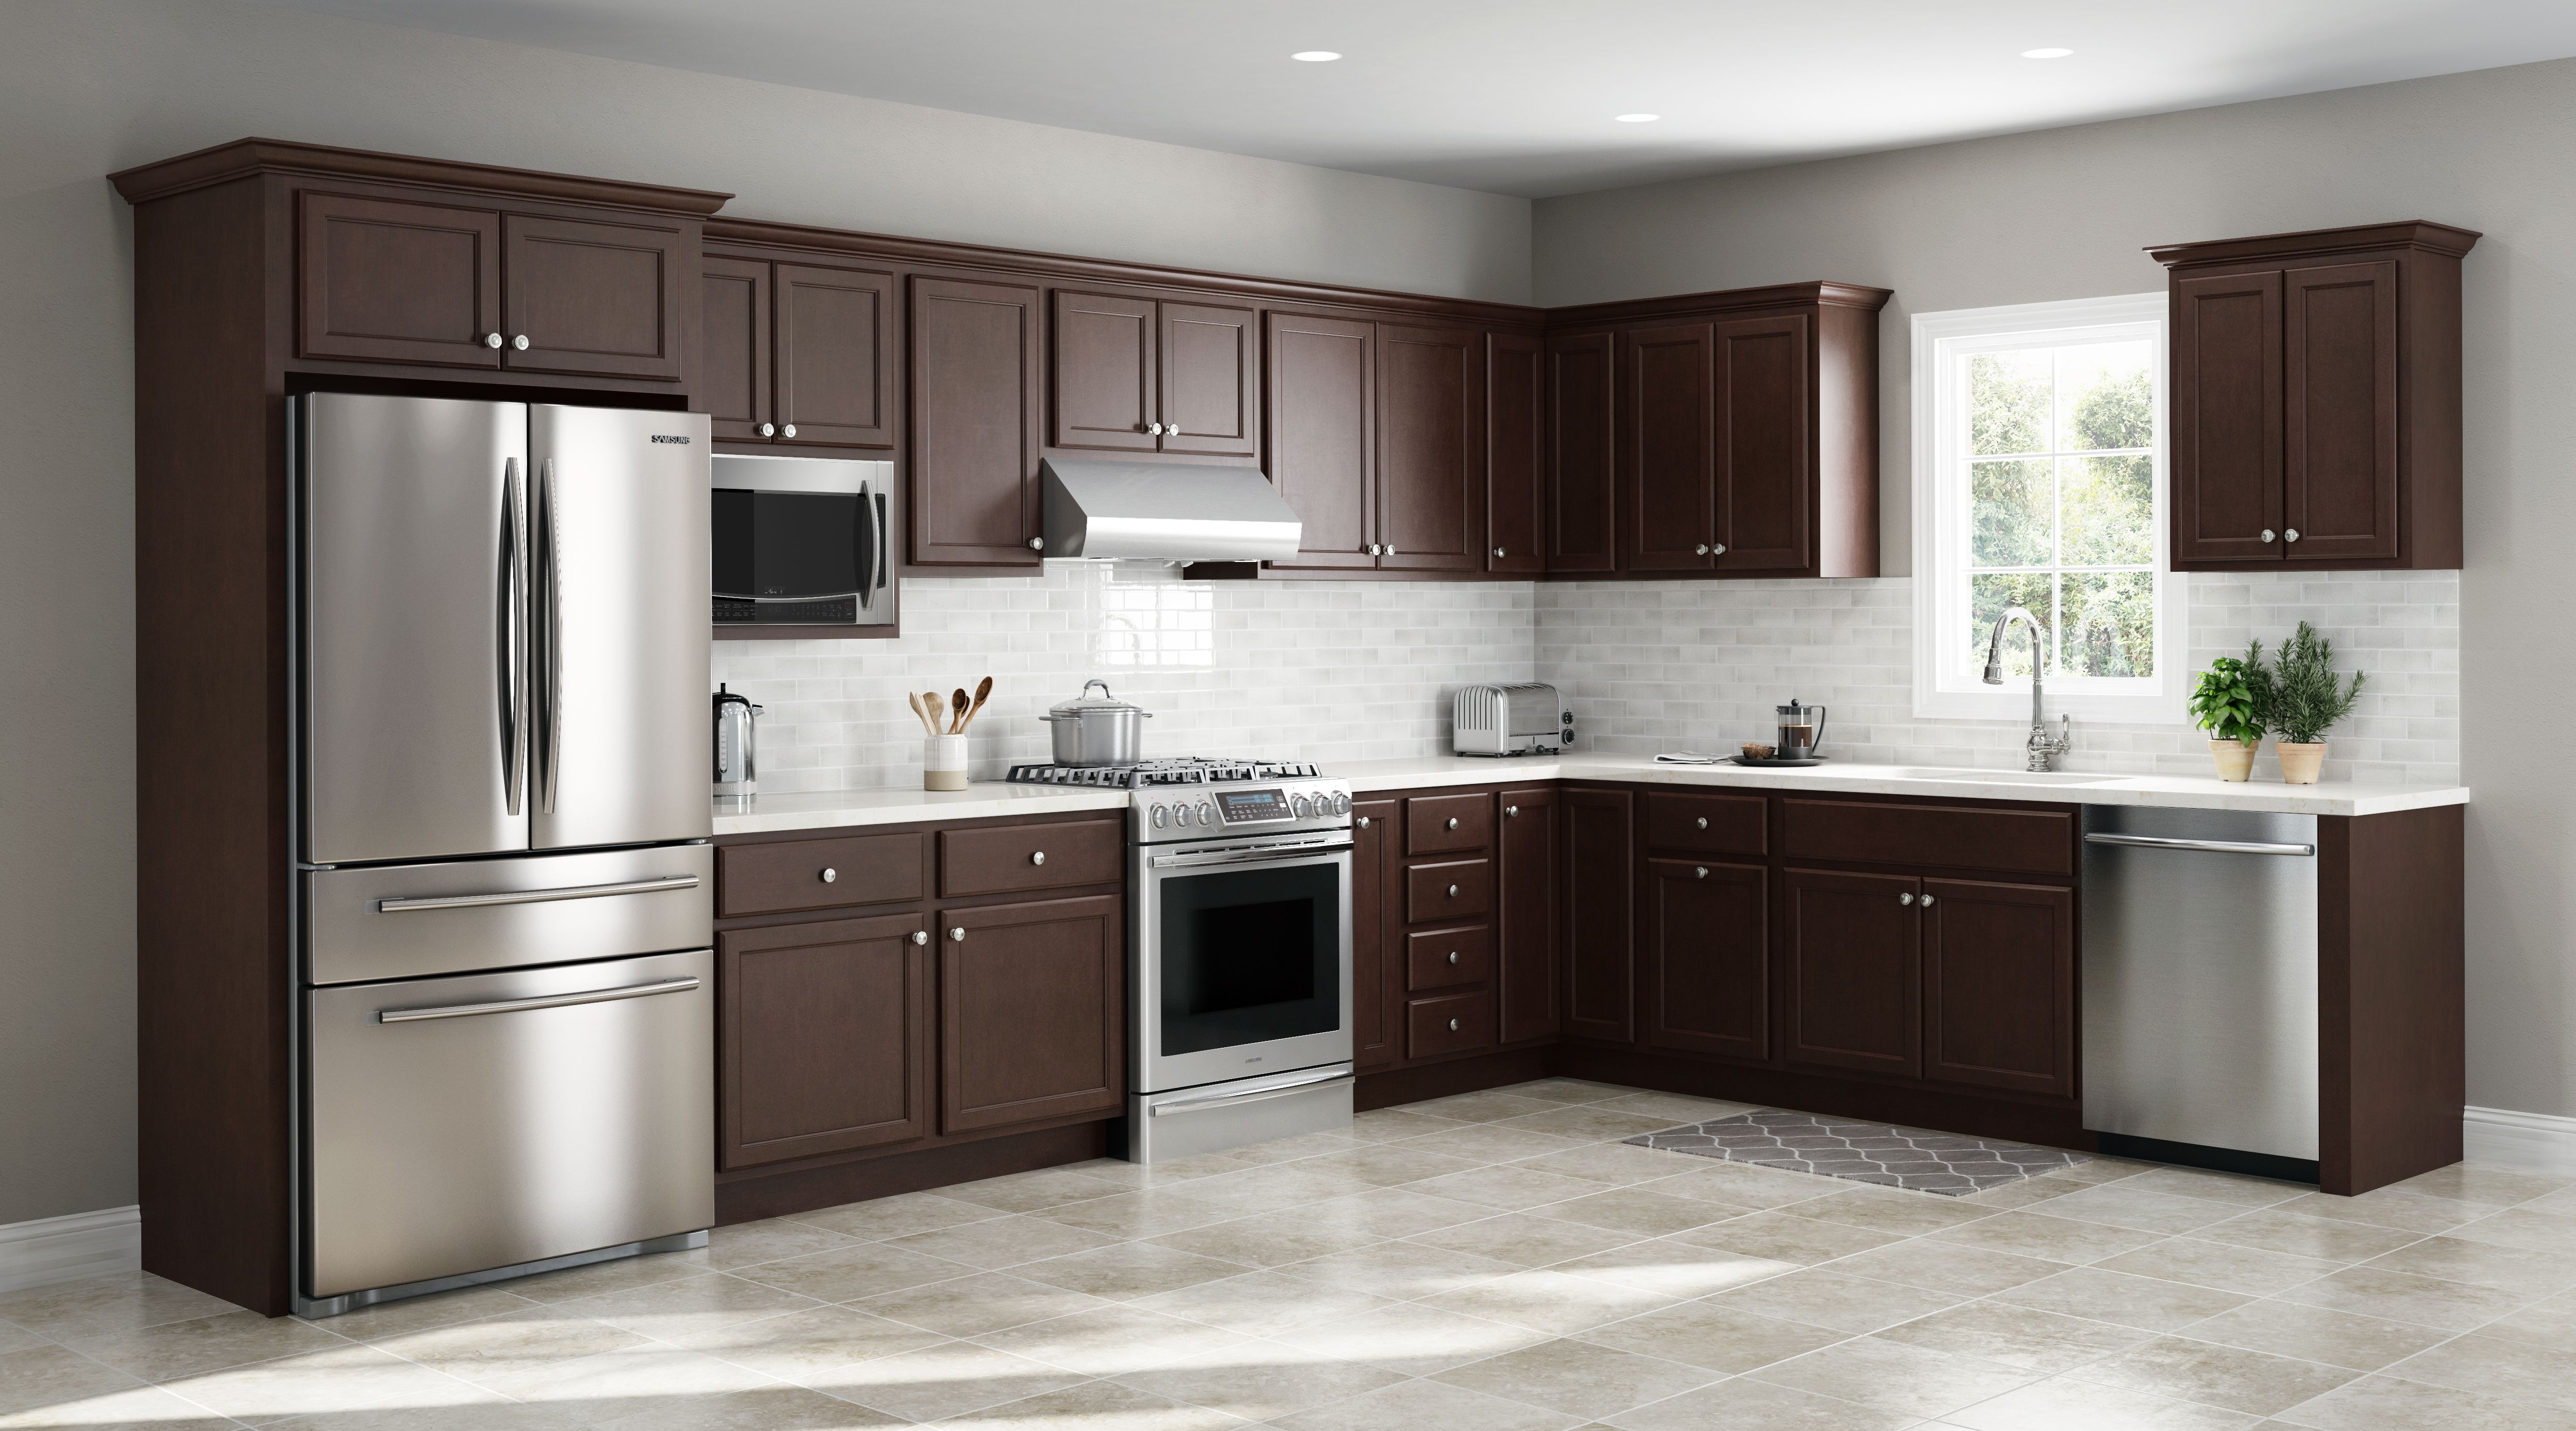 Kitchen Cabinets Kountry Cabinets Home Furnishings In 2020 Kitchen Cabinets Slate Kitchen Stained Kitchen Cabinets